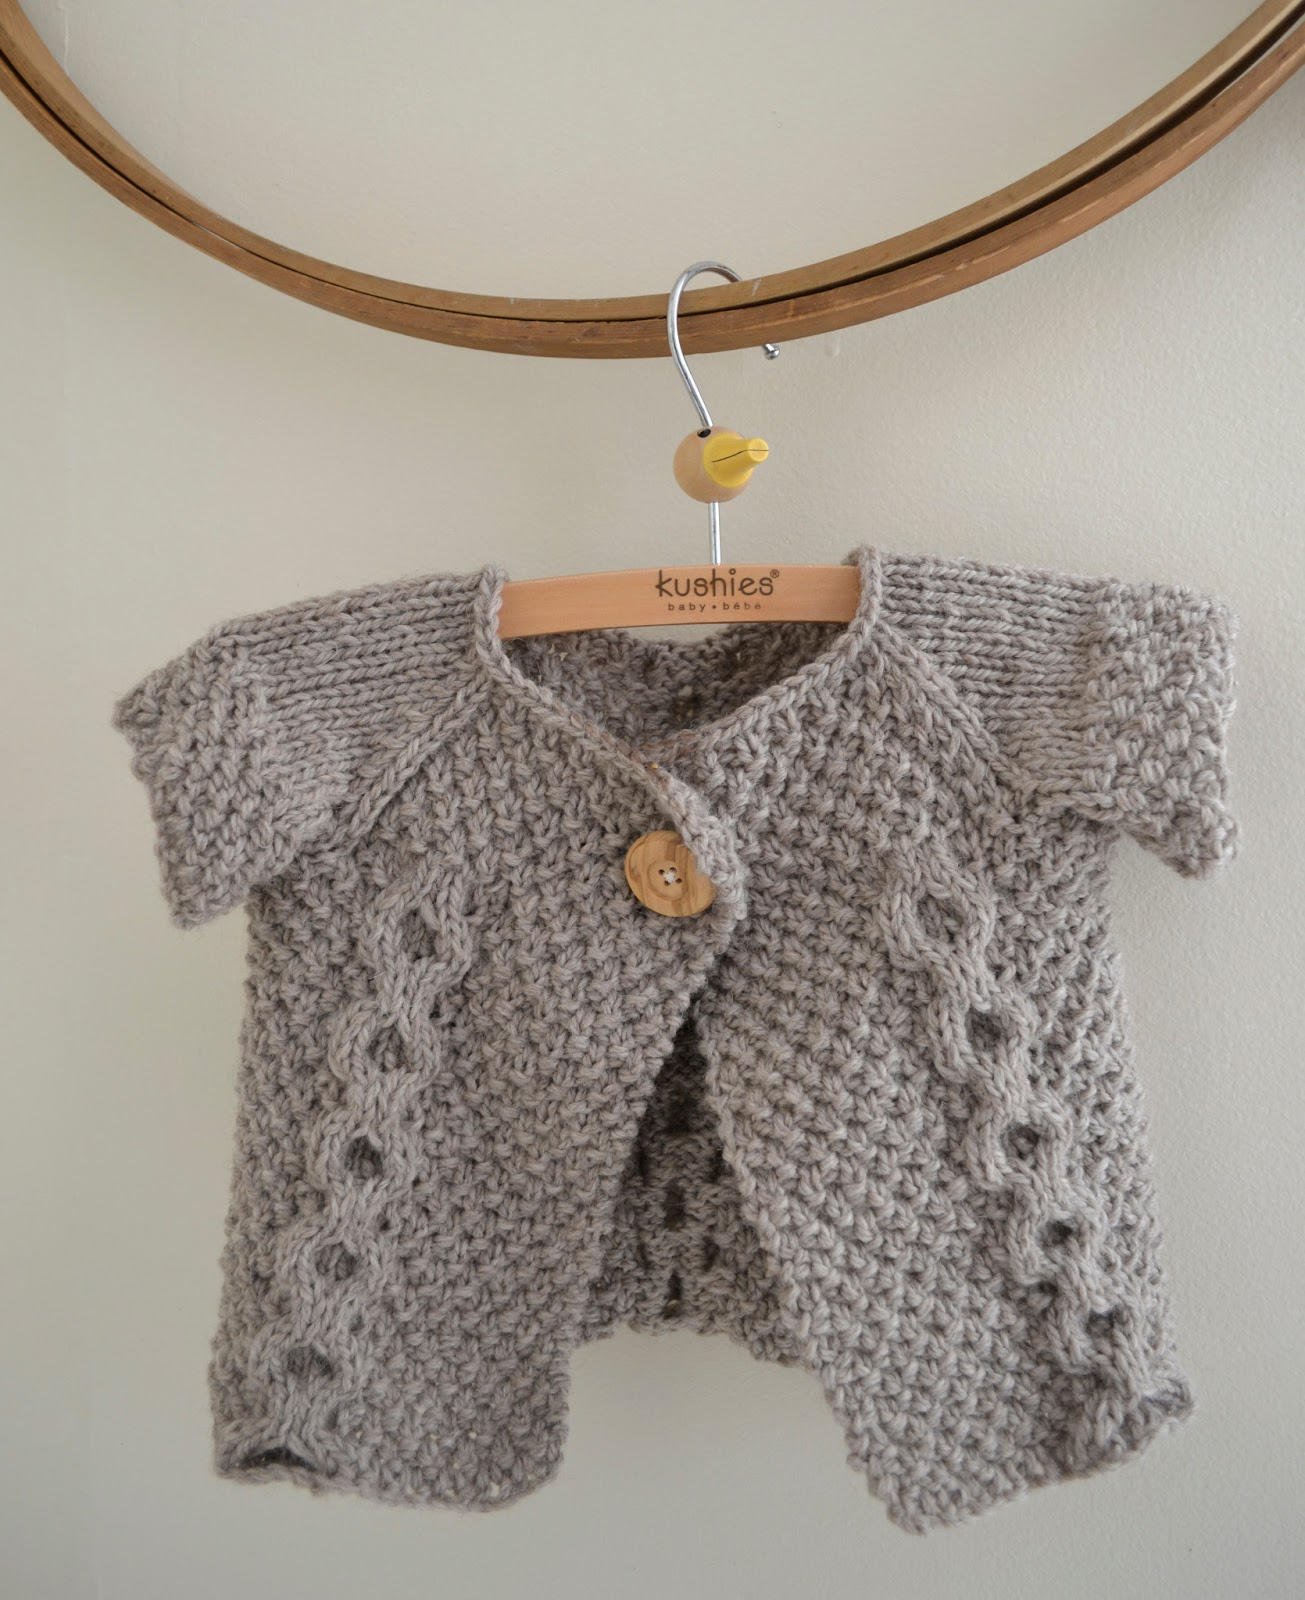 Knitting Sweater Design For Baby Girl : Baby Sweater Knitting Pattern A Knitting Blog